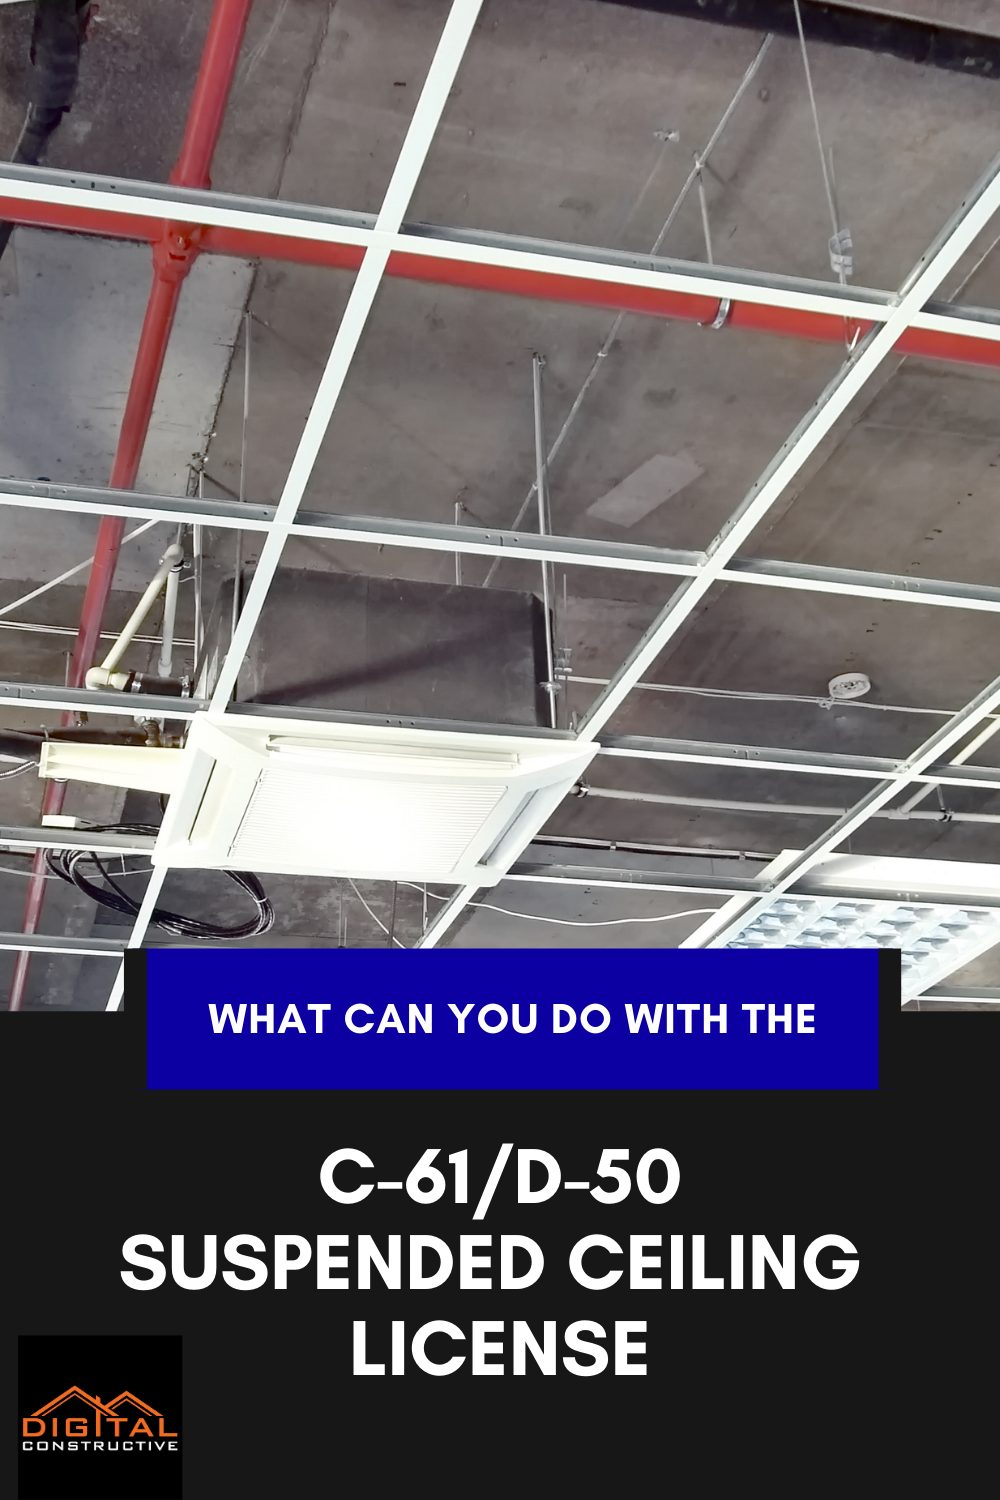 what can you do with the C-61 contractors license for suspended ceilings installation in california